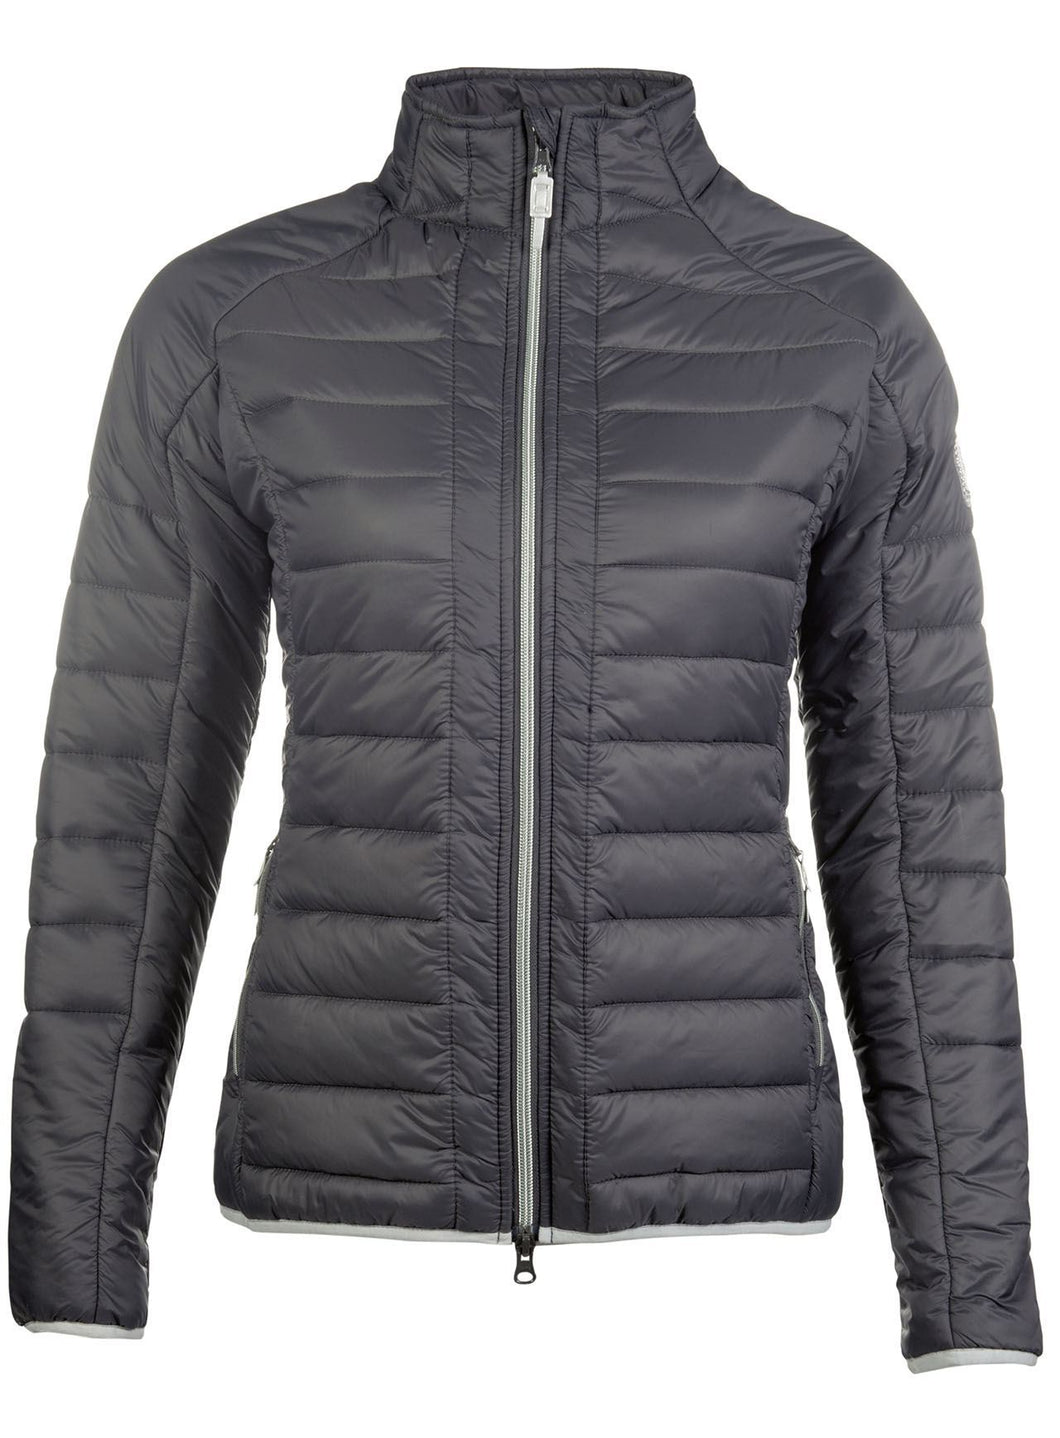 Riding jacket -Piemont-